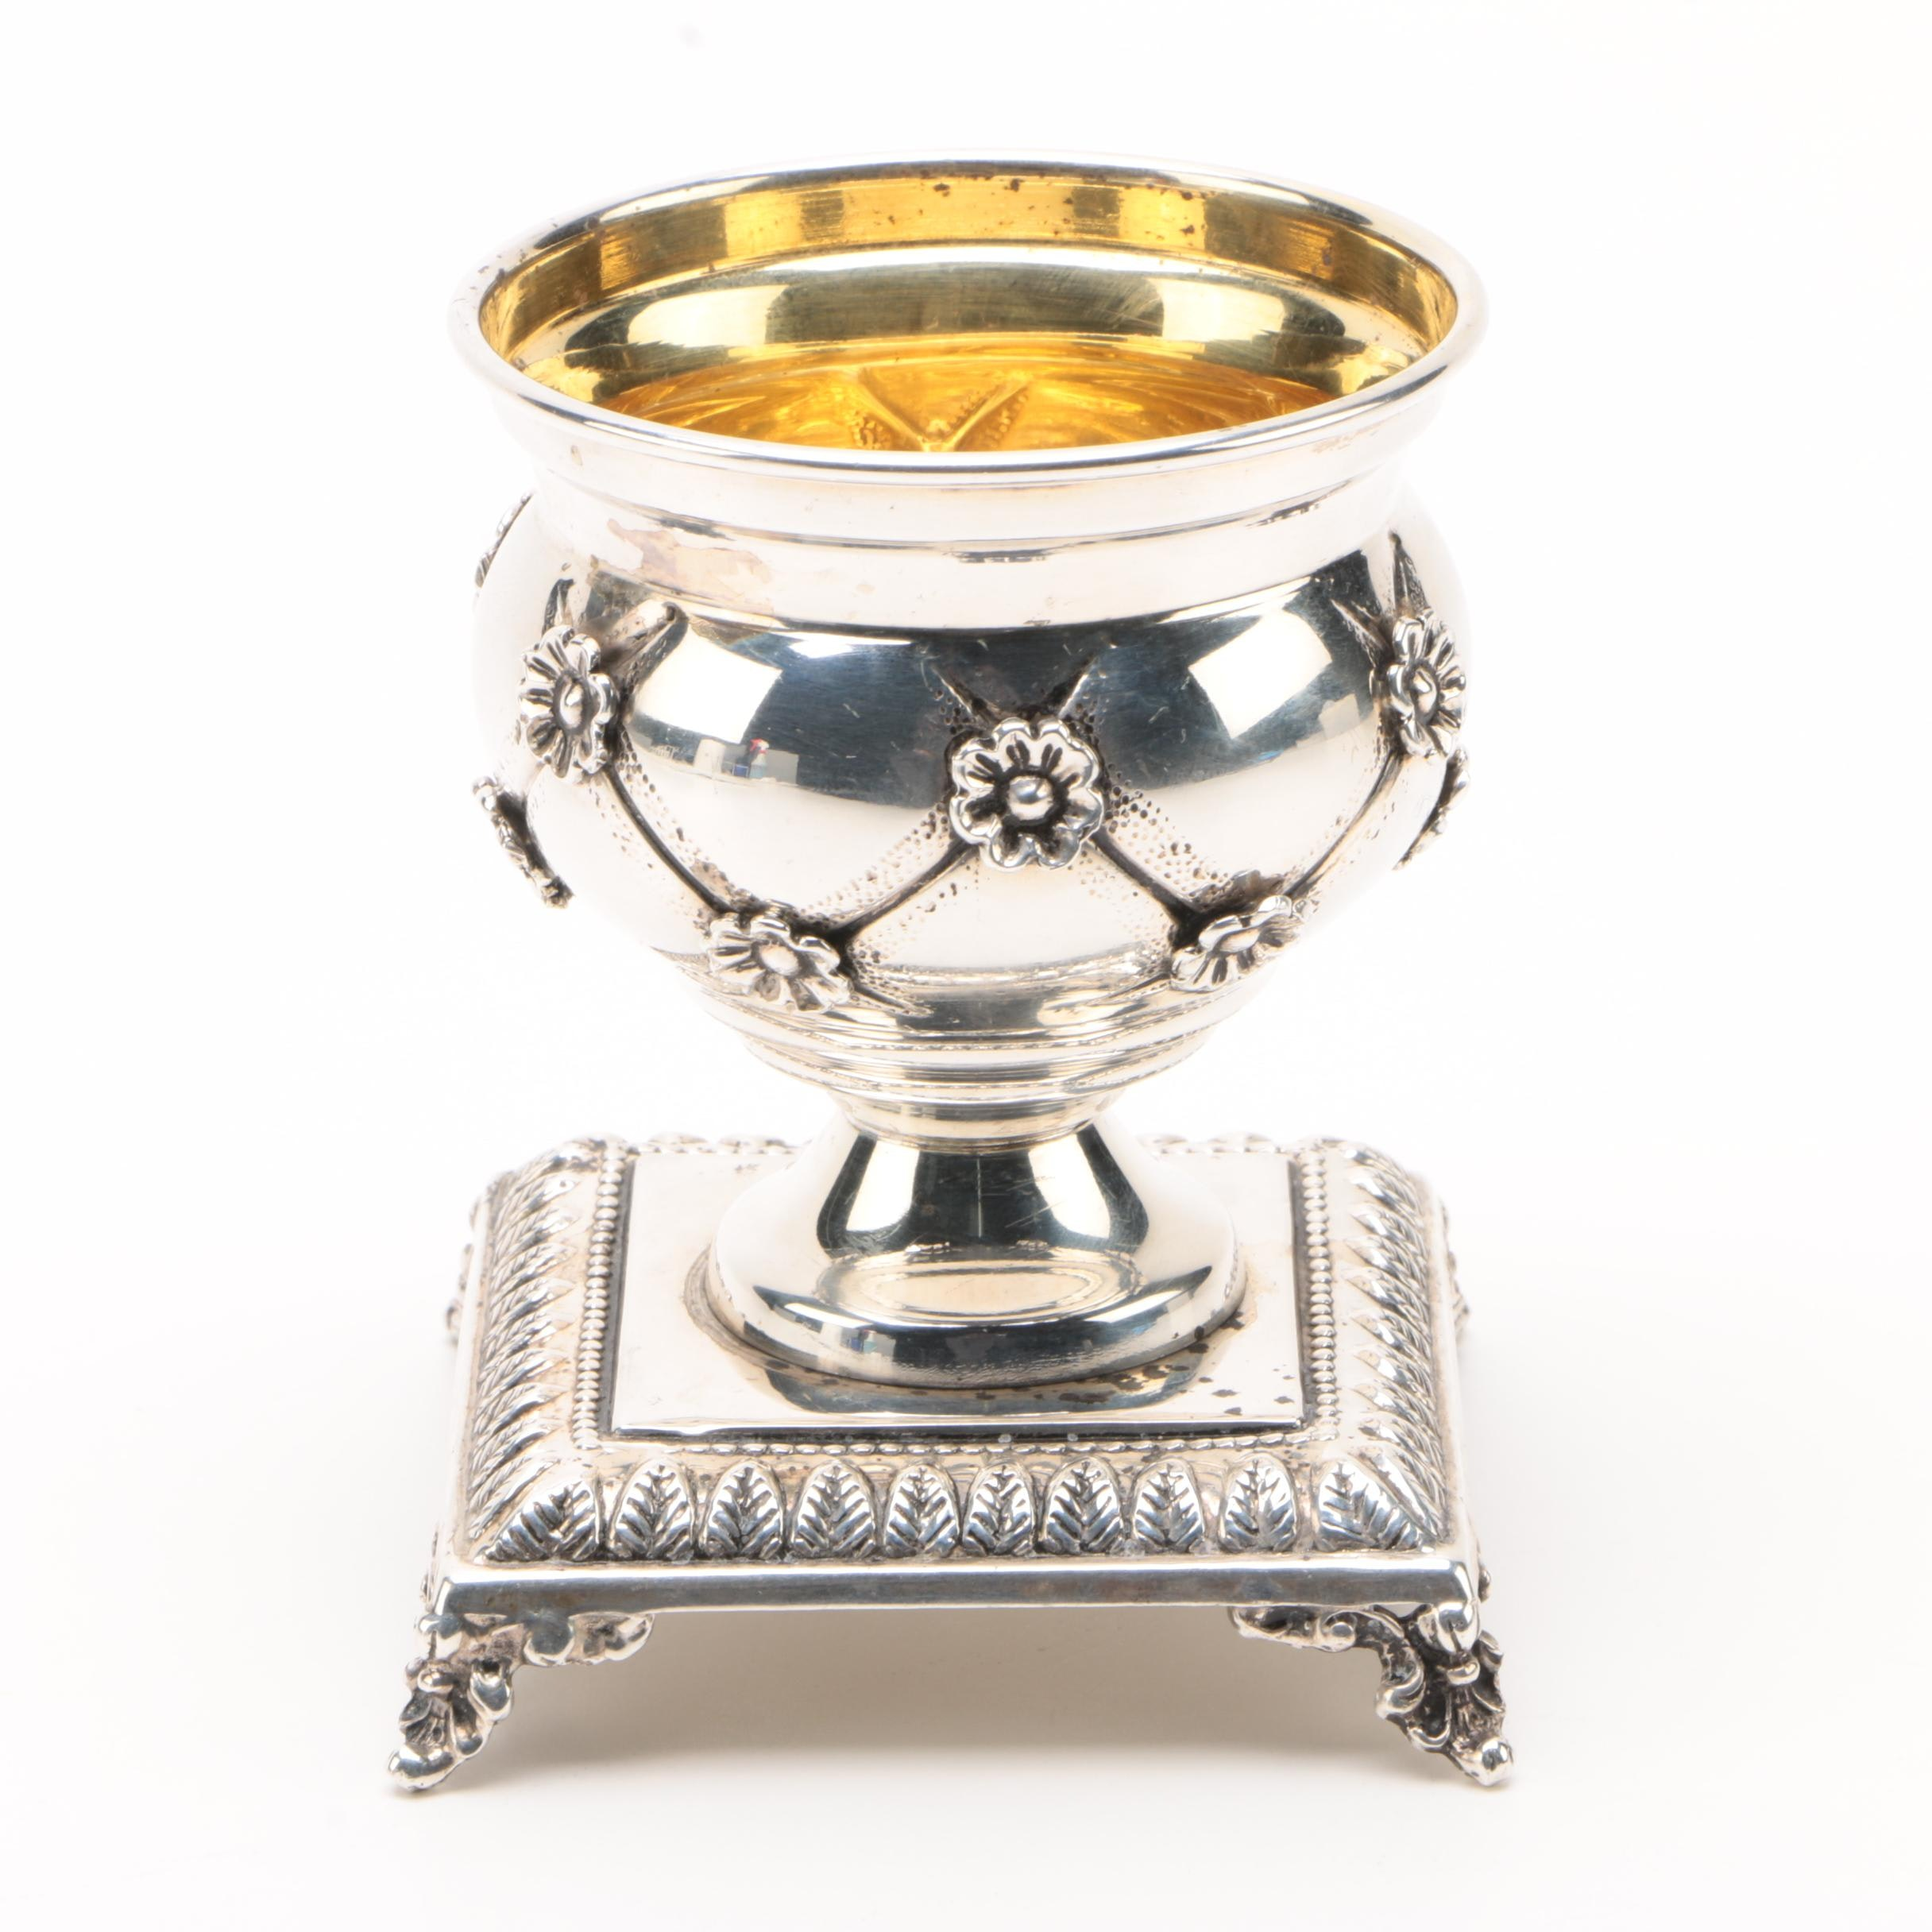 Hadad Bros. Israeli Sterling Silver Master Salt Cellar